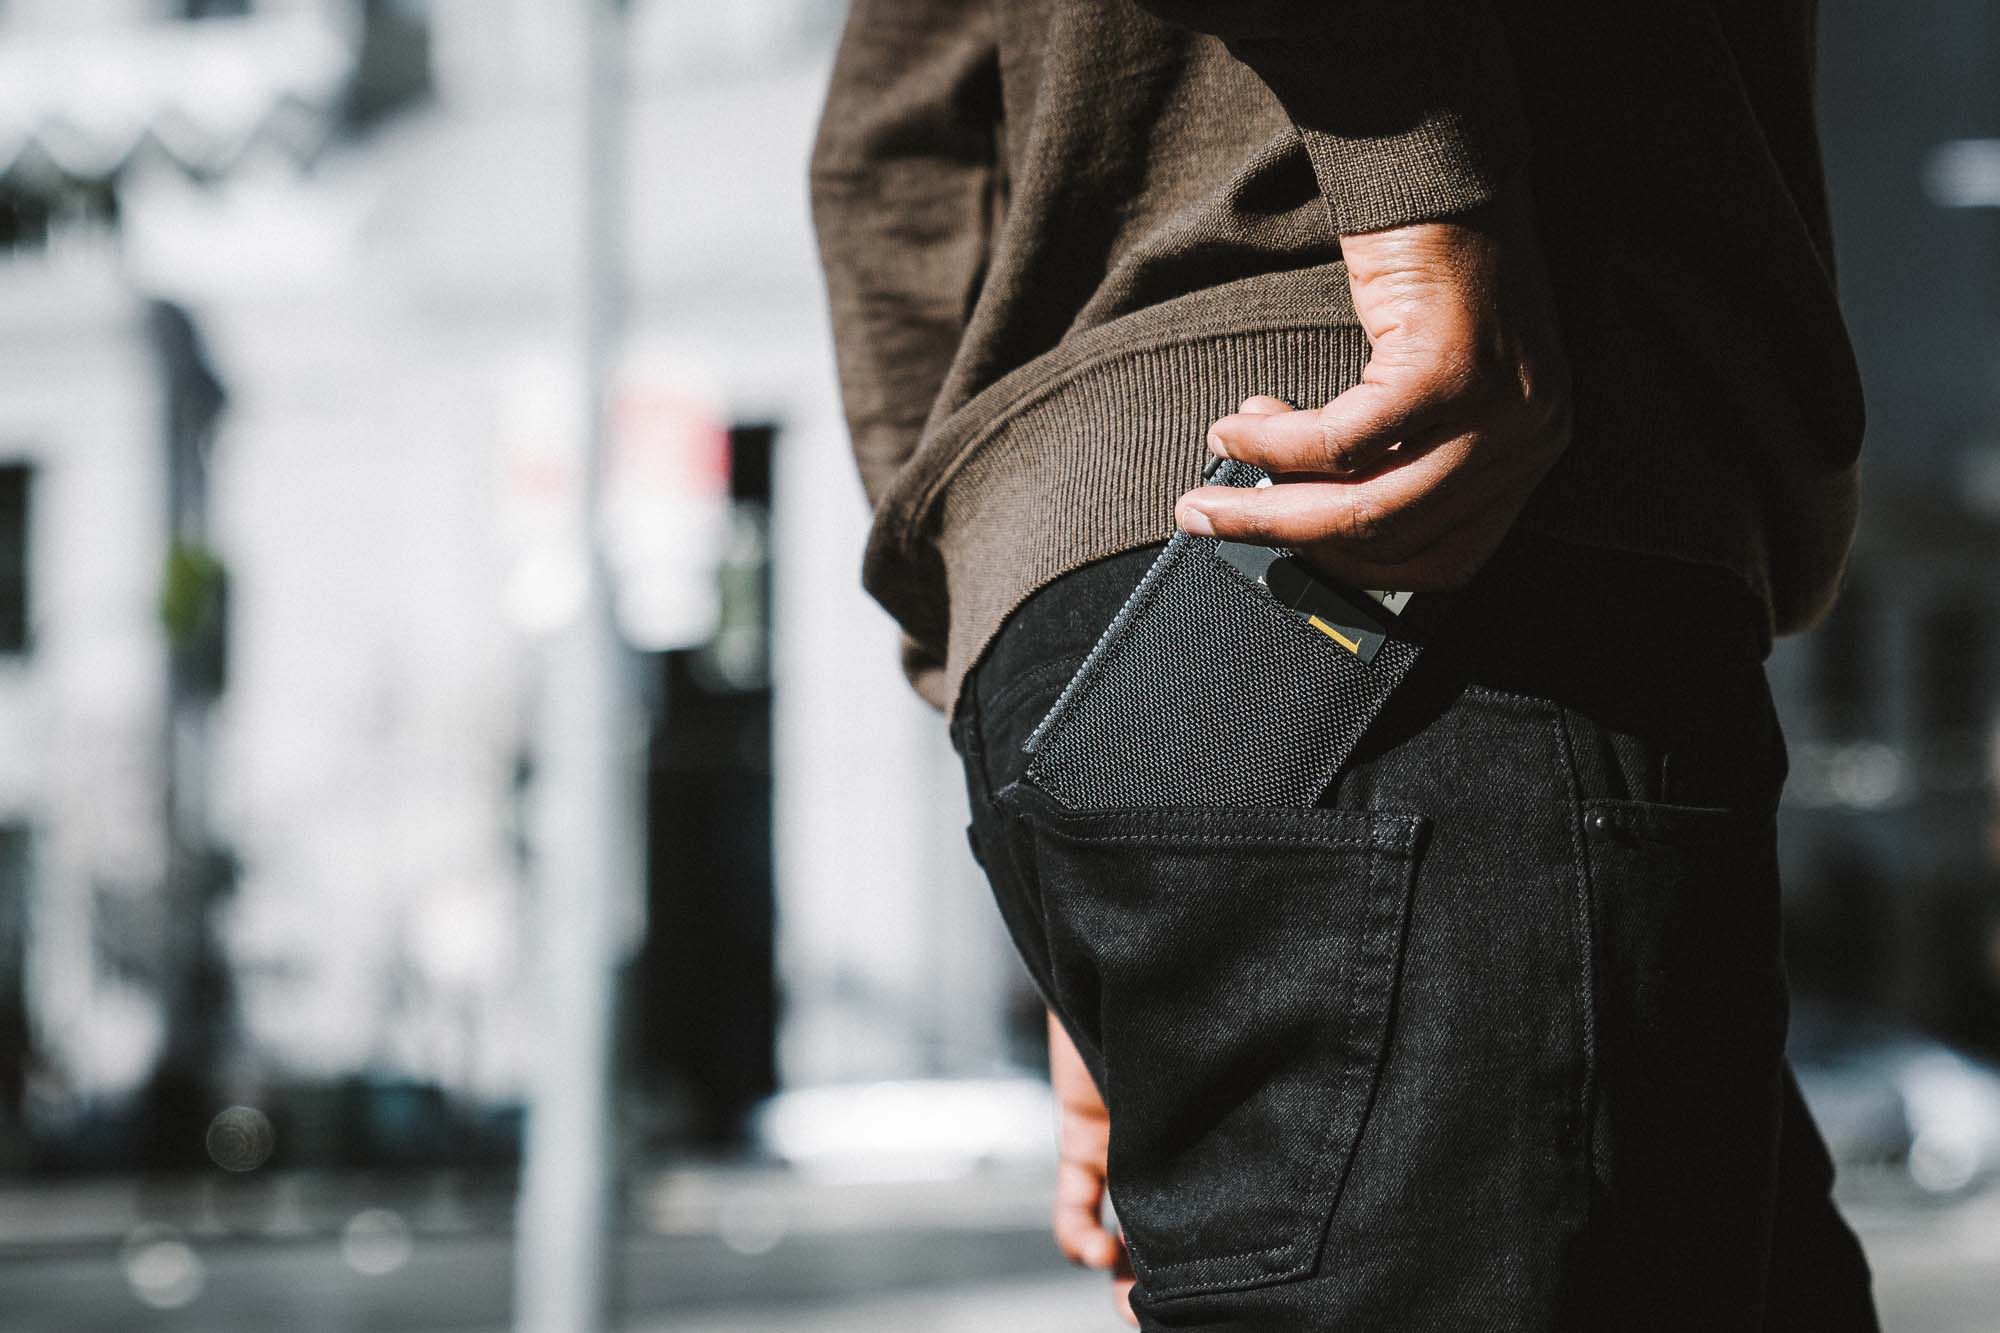 41004_cardholder_black_backpocket.jpg